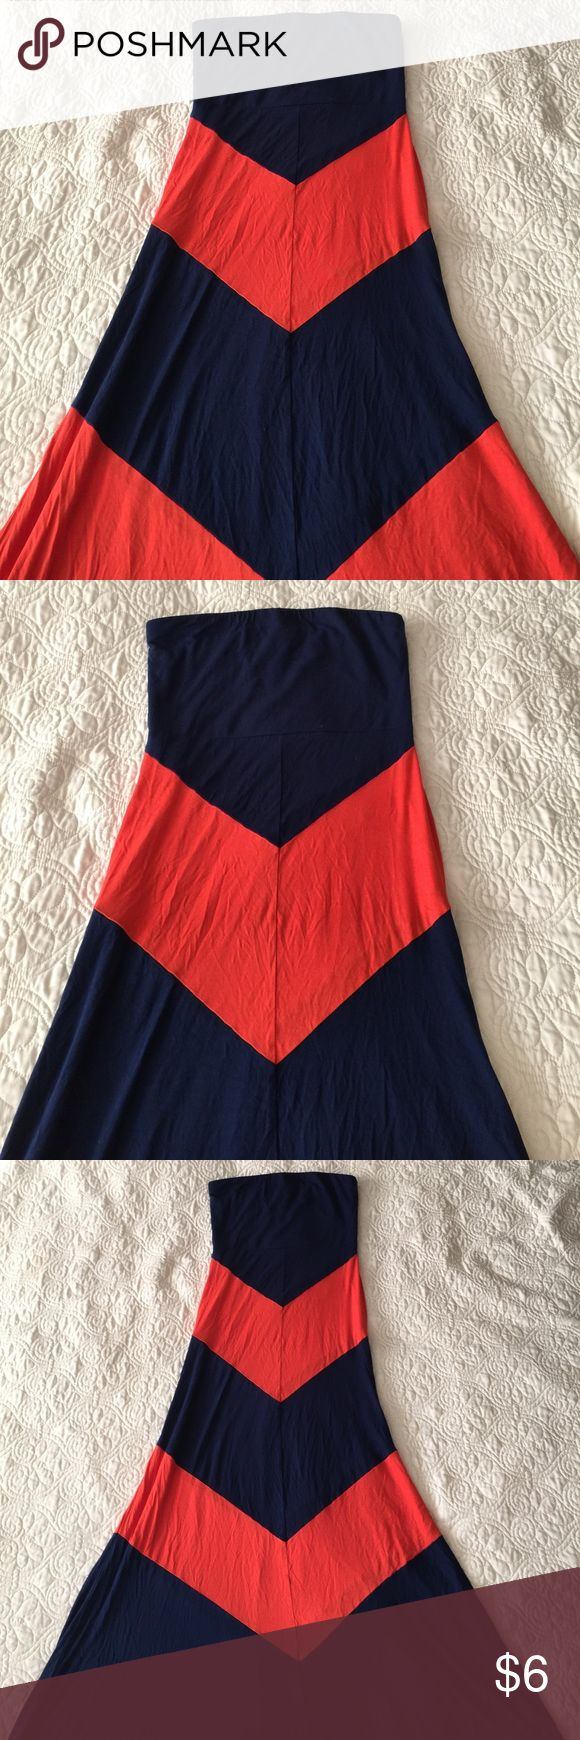 A'gaci Strapless Maxi Dress Size M Only worn once. Navy Maxi Dress with orange chevron print. In perfect shape! Some free home. Make an offer! Thanks for looking :) a'gaci Dresses Maxi